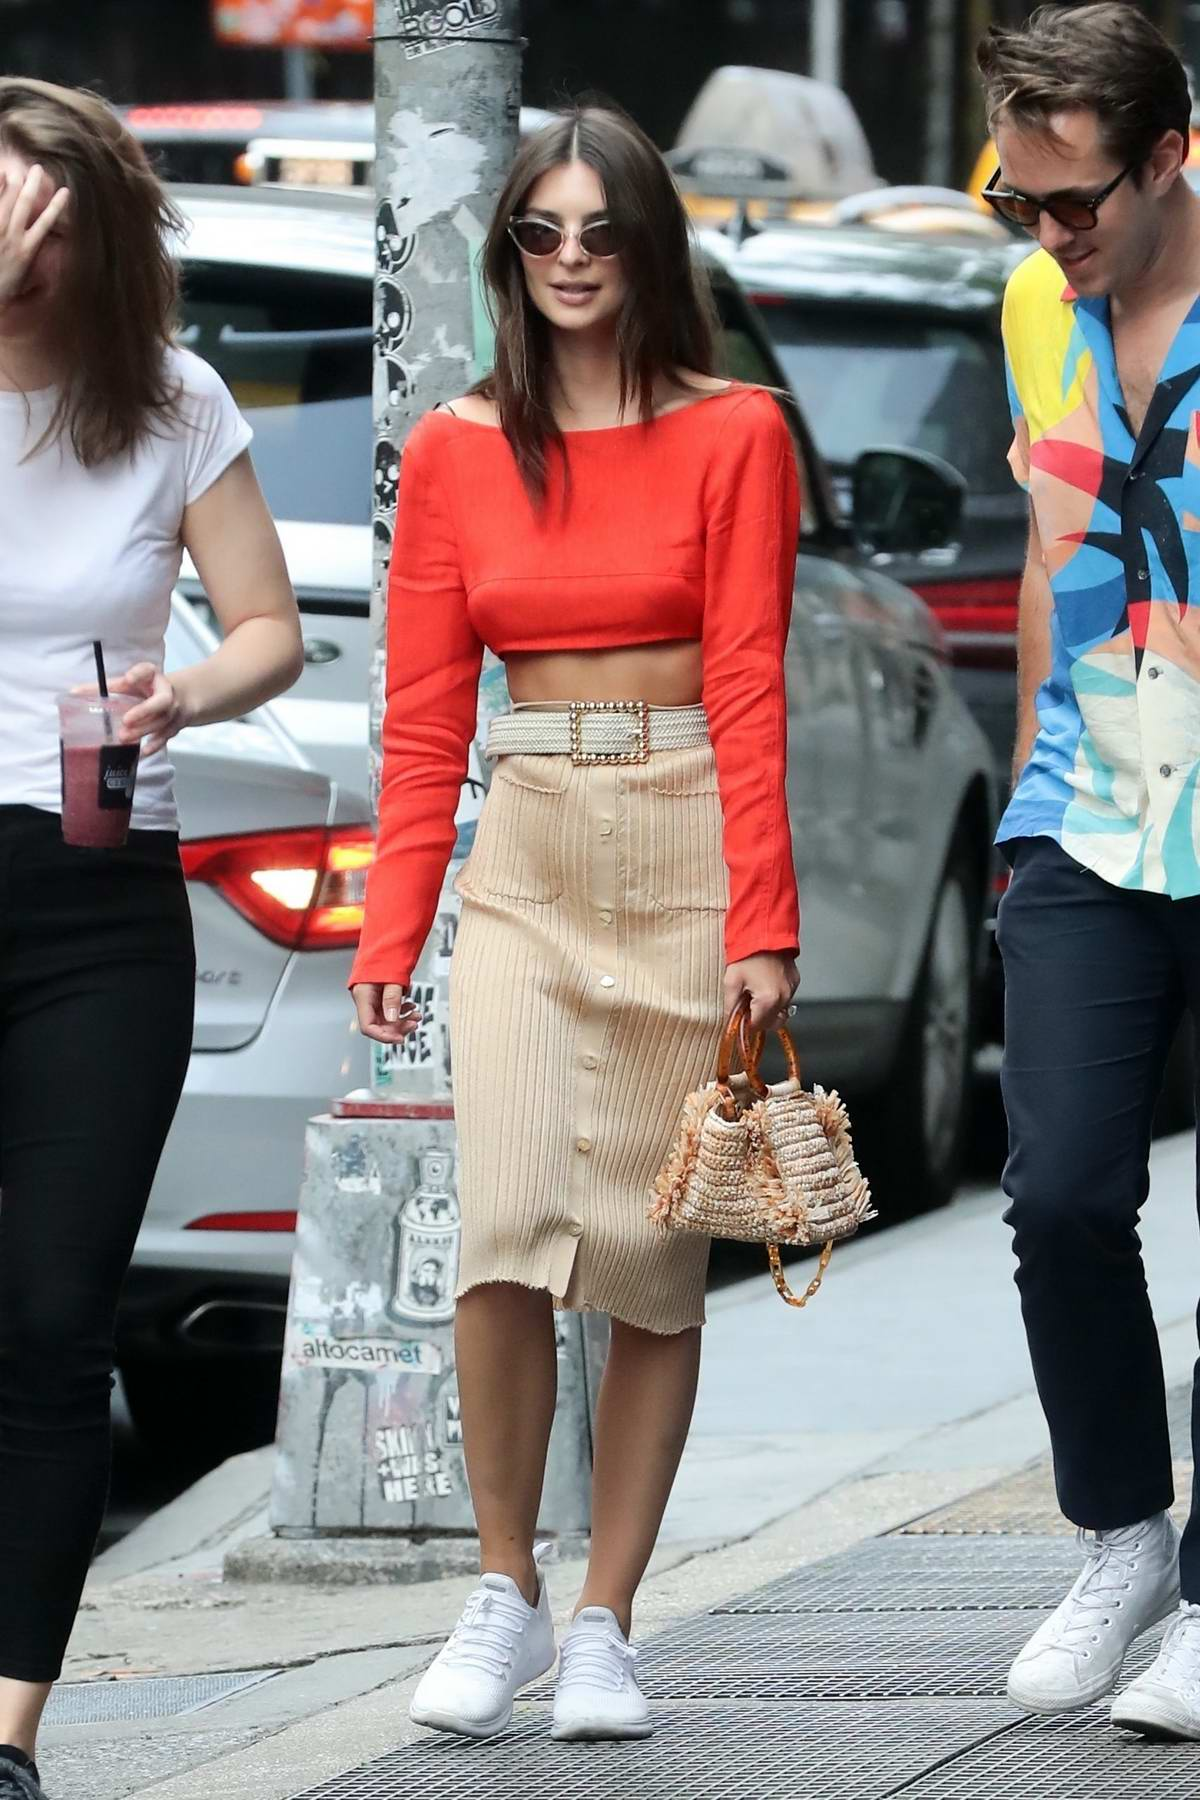 Emily Ratajkowski steps out for a stroll in a red crop top and beige skirt in New York City